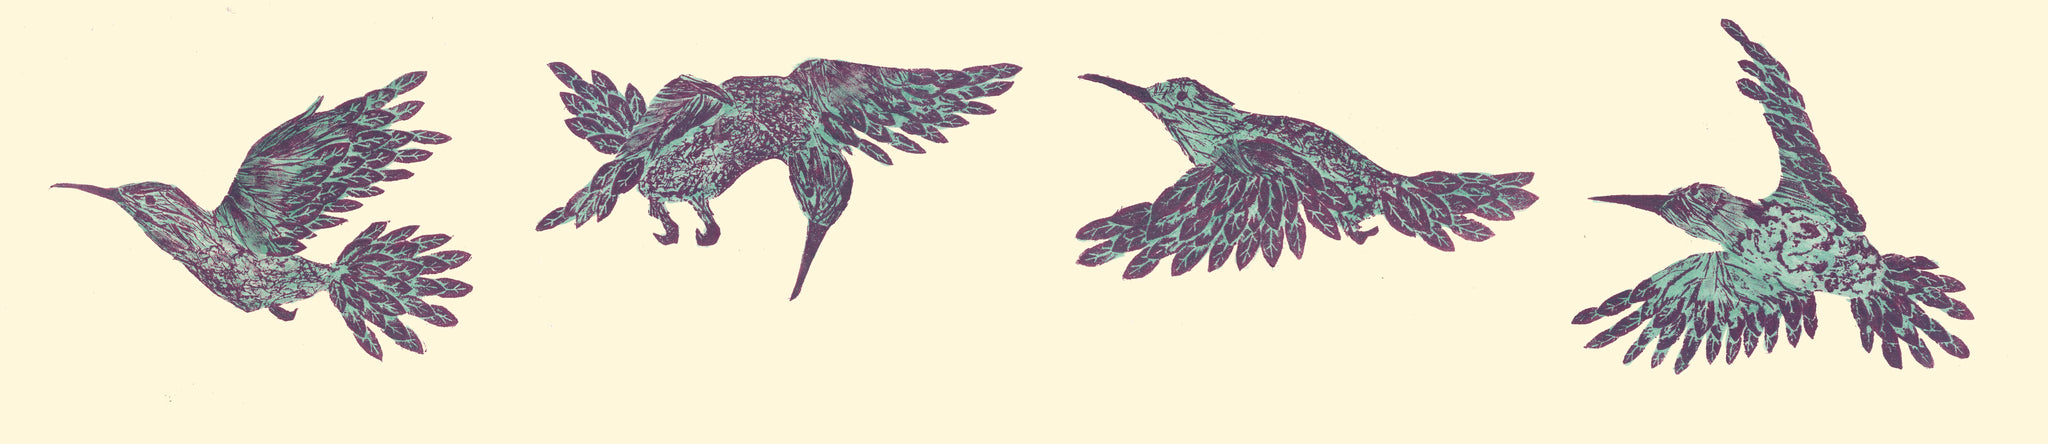 Purple and turquoise humming bird collographs